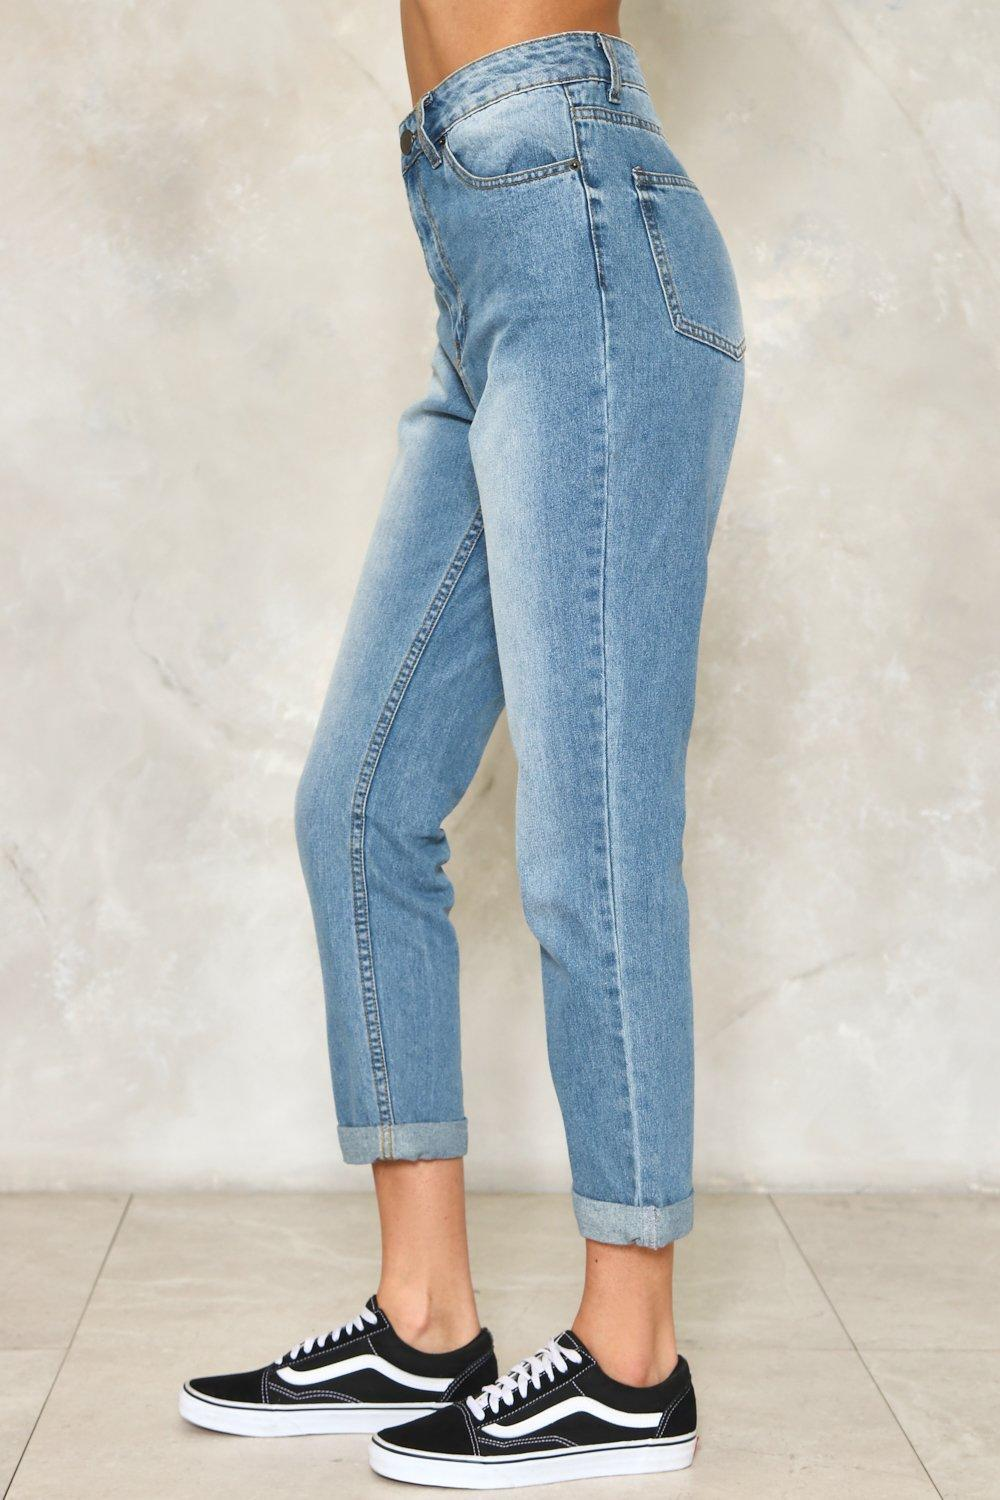 high waist cropped jeans - side view